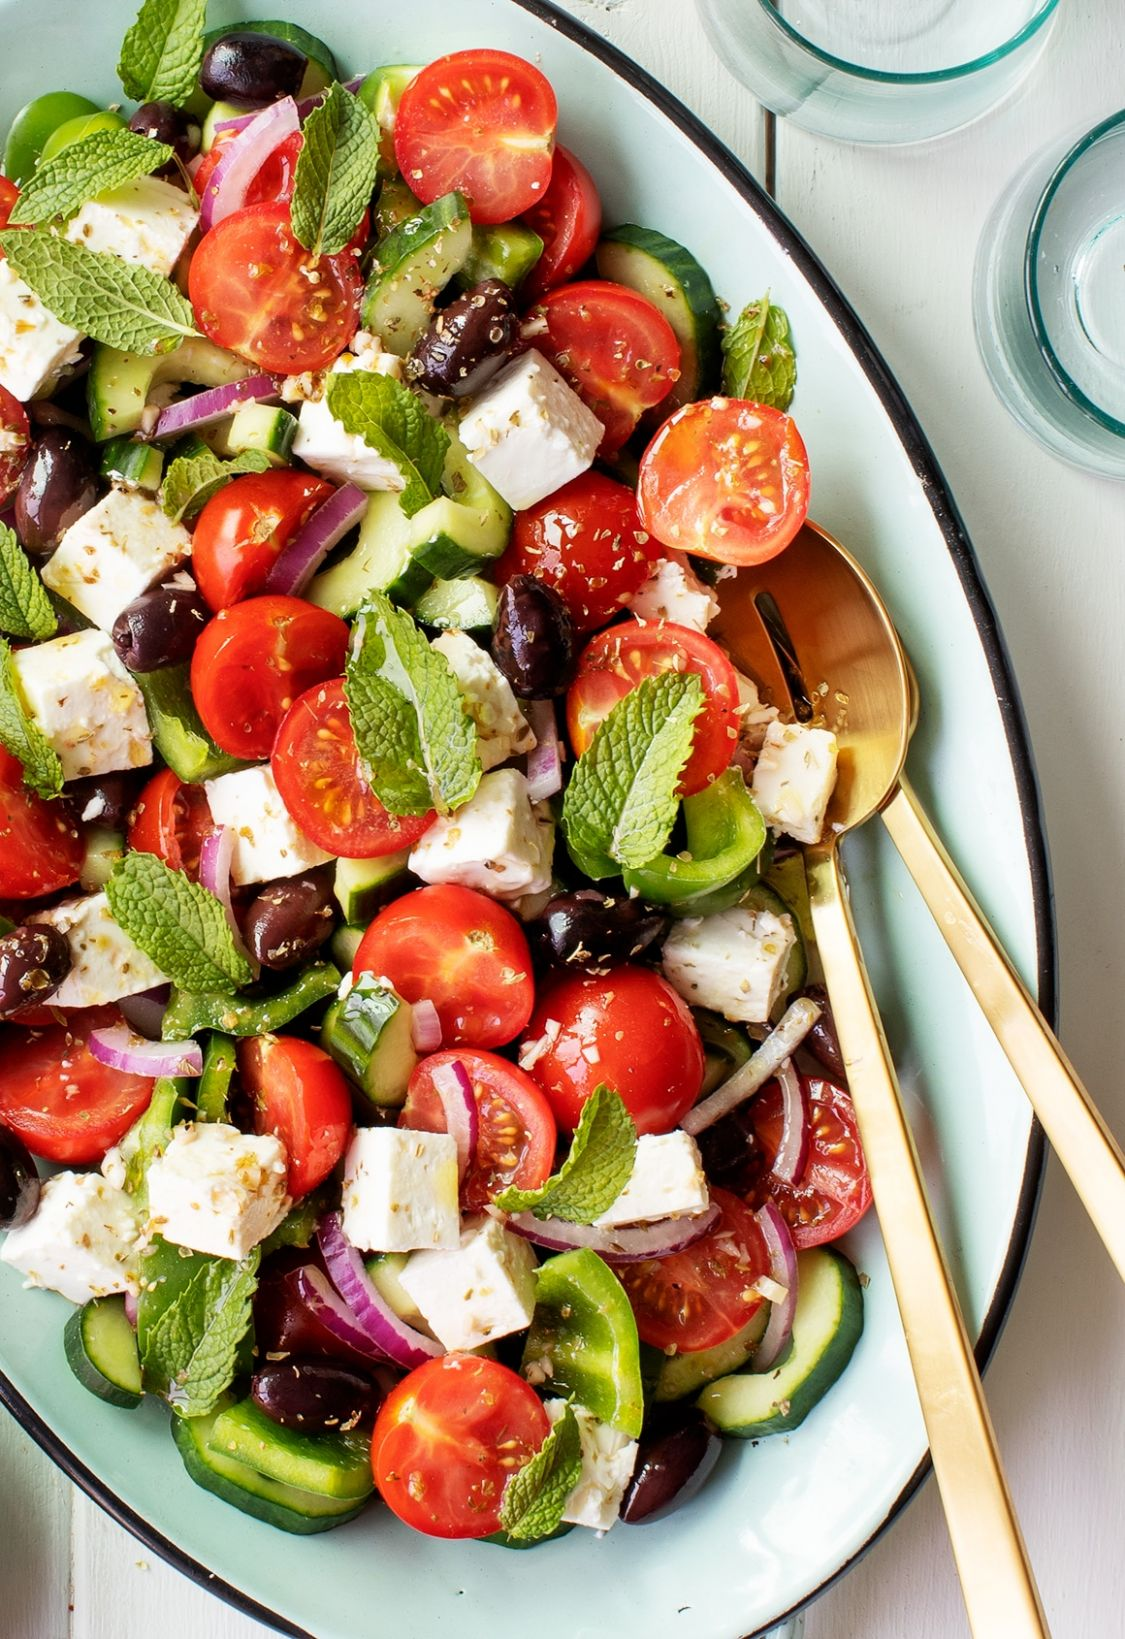 Best Salad Recipes: Easy Greek Salad - Salad Recipes You Can Make The Day Before